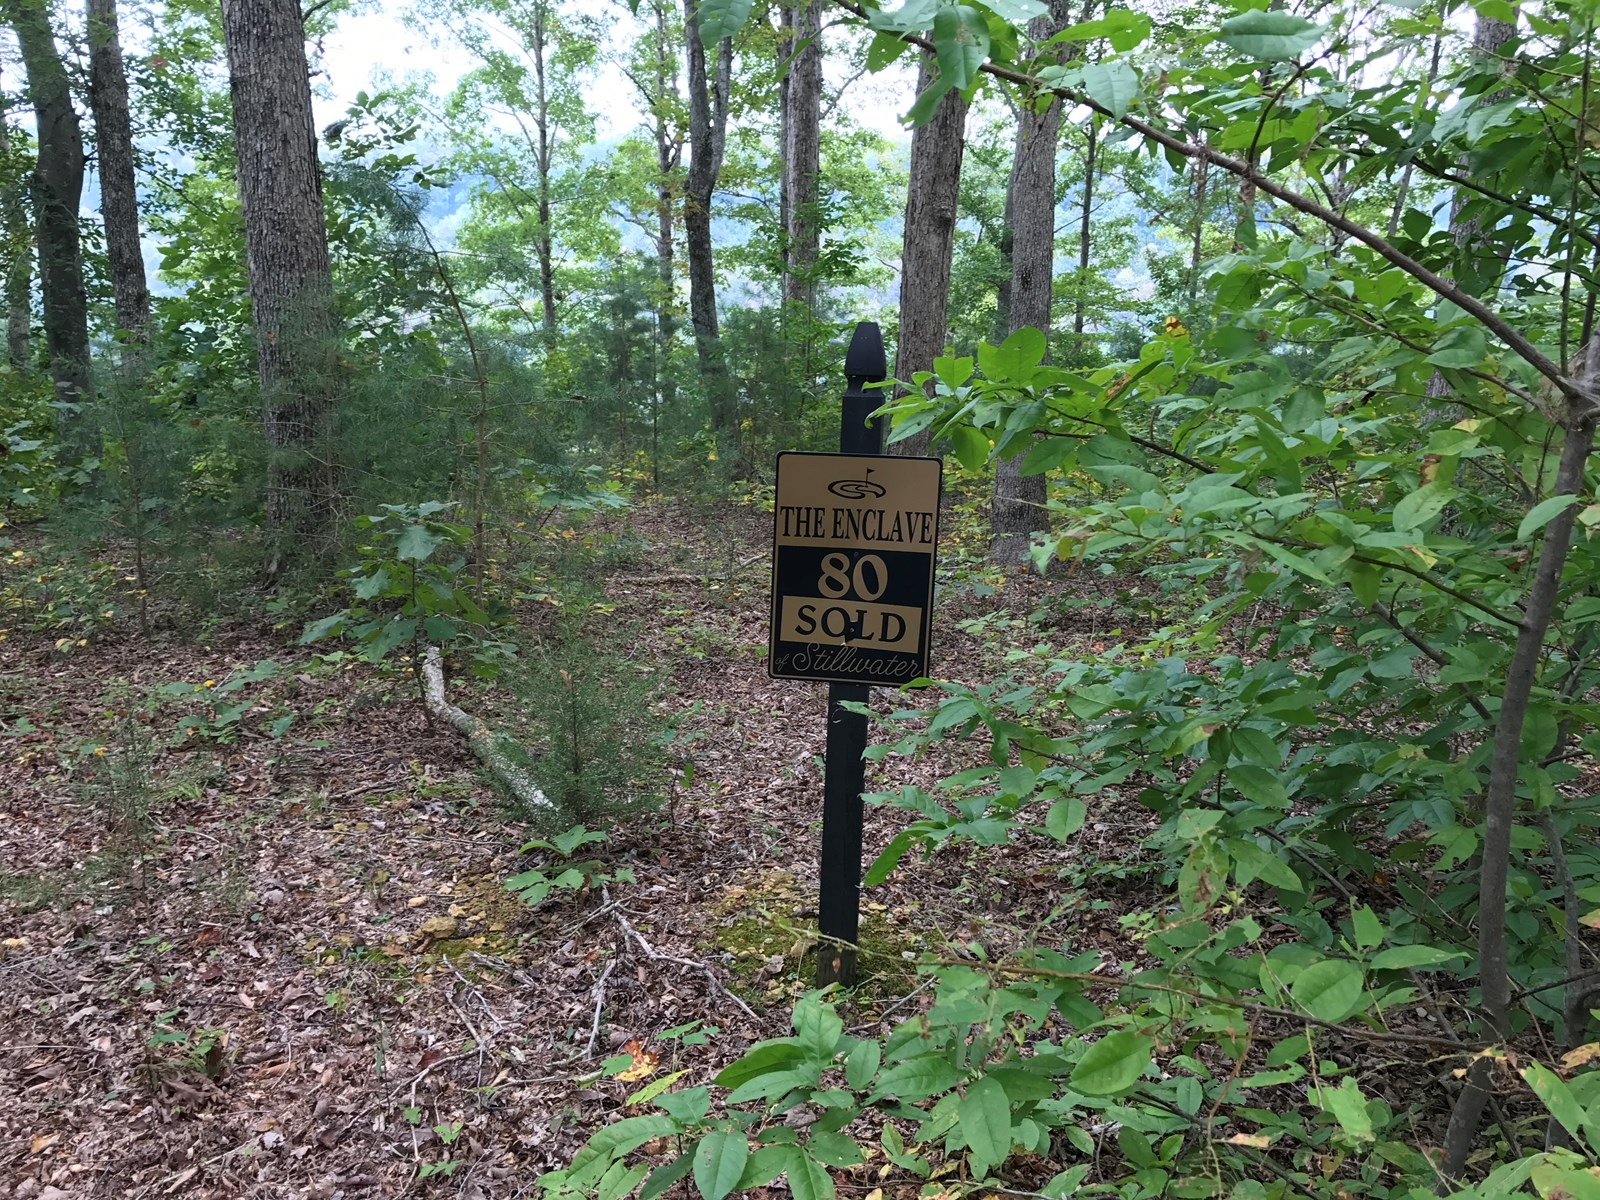 Land for sale, Russell Springs, Kentucky